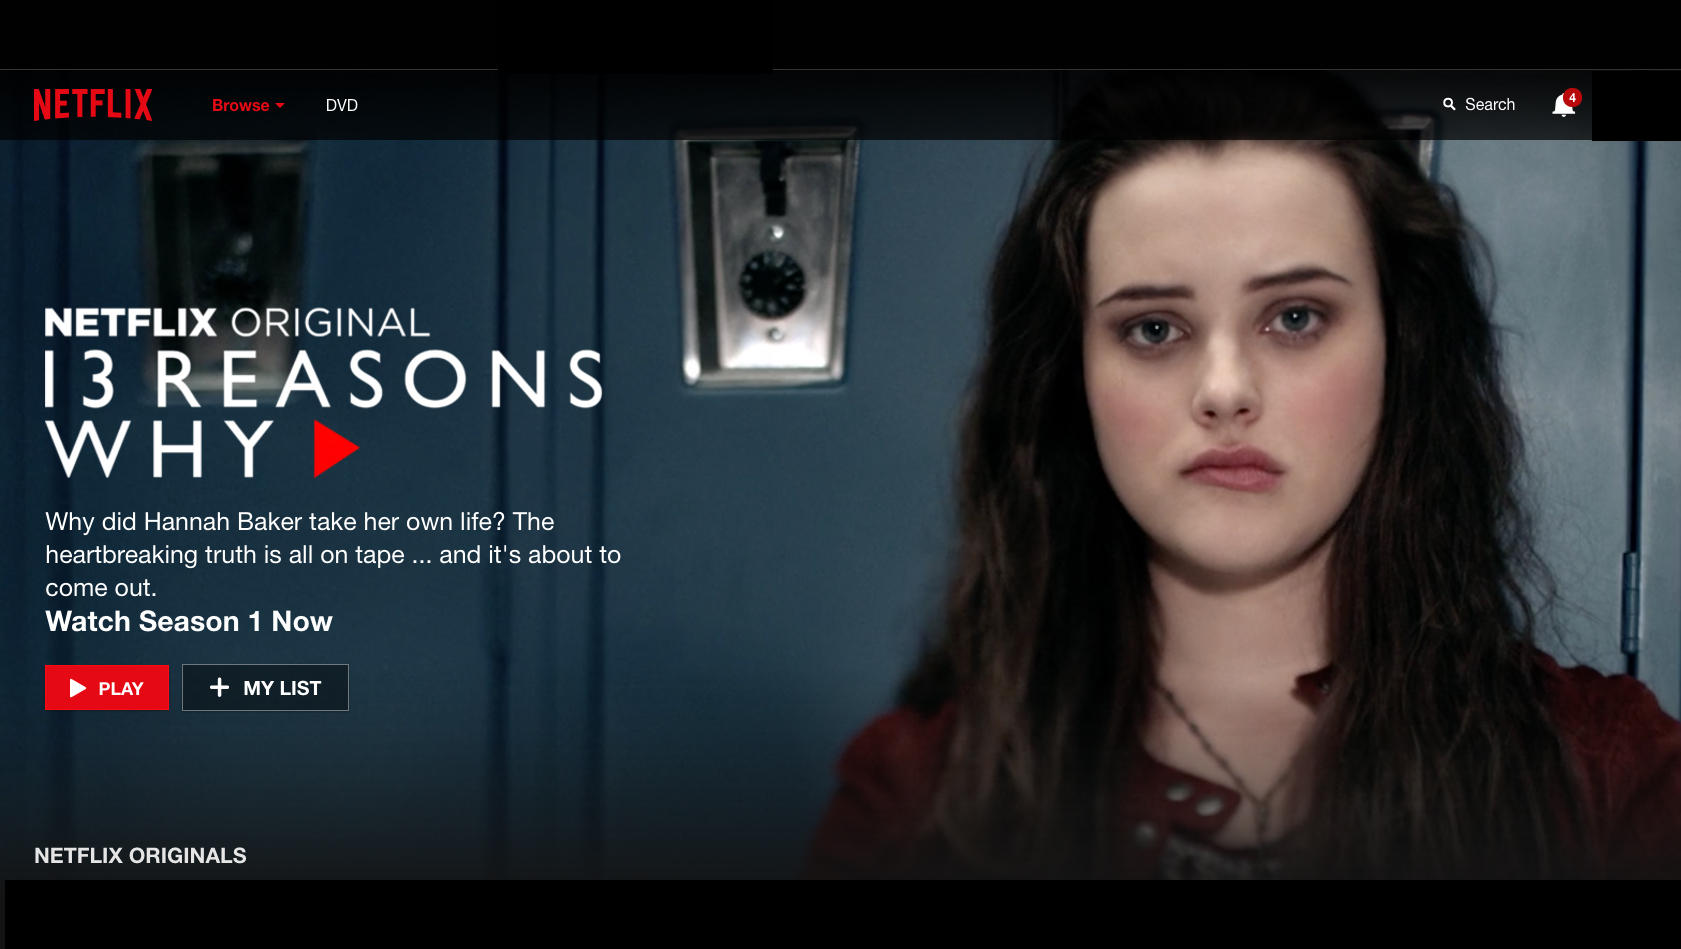 reasons why talk shows are trash Aubrey page reviews the new netflix drama 13 reasons why, a series based on the moving jay asher novel, starring dylan minnette and katherine langford  '13 reasons why' review: what a.